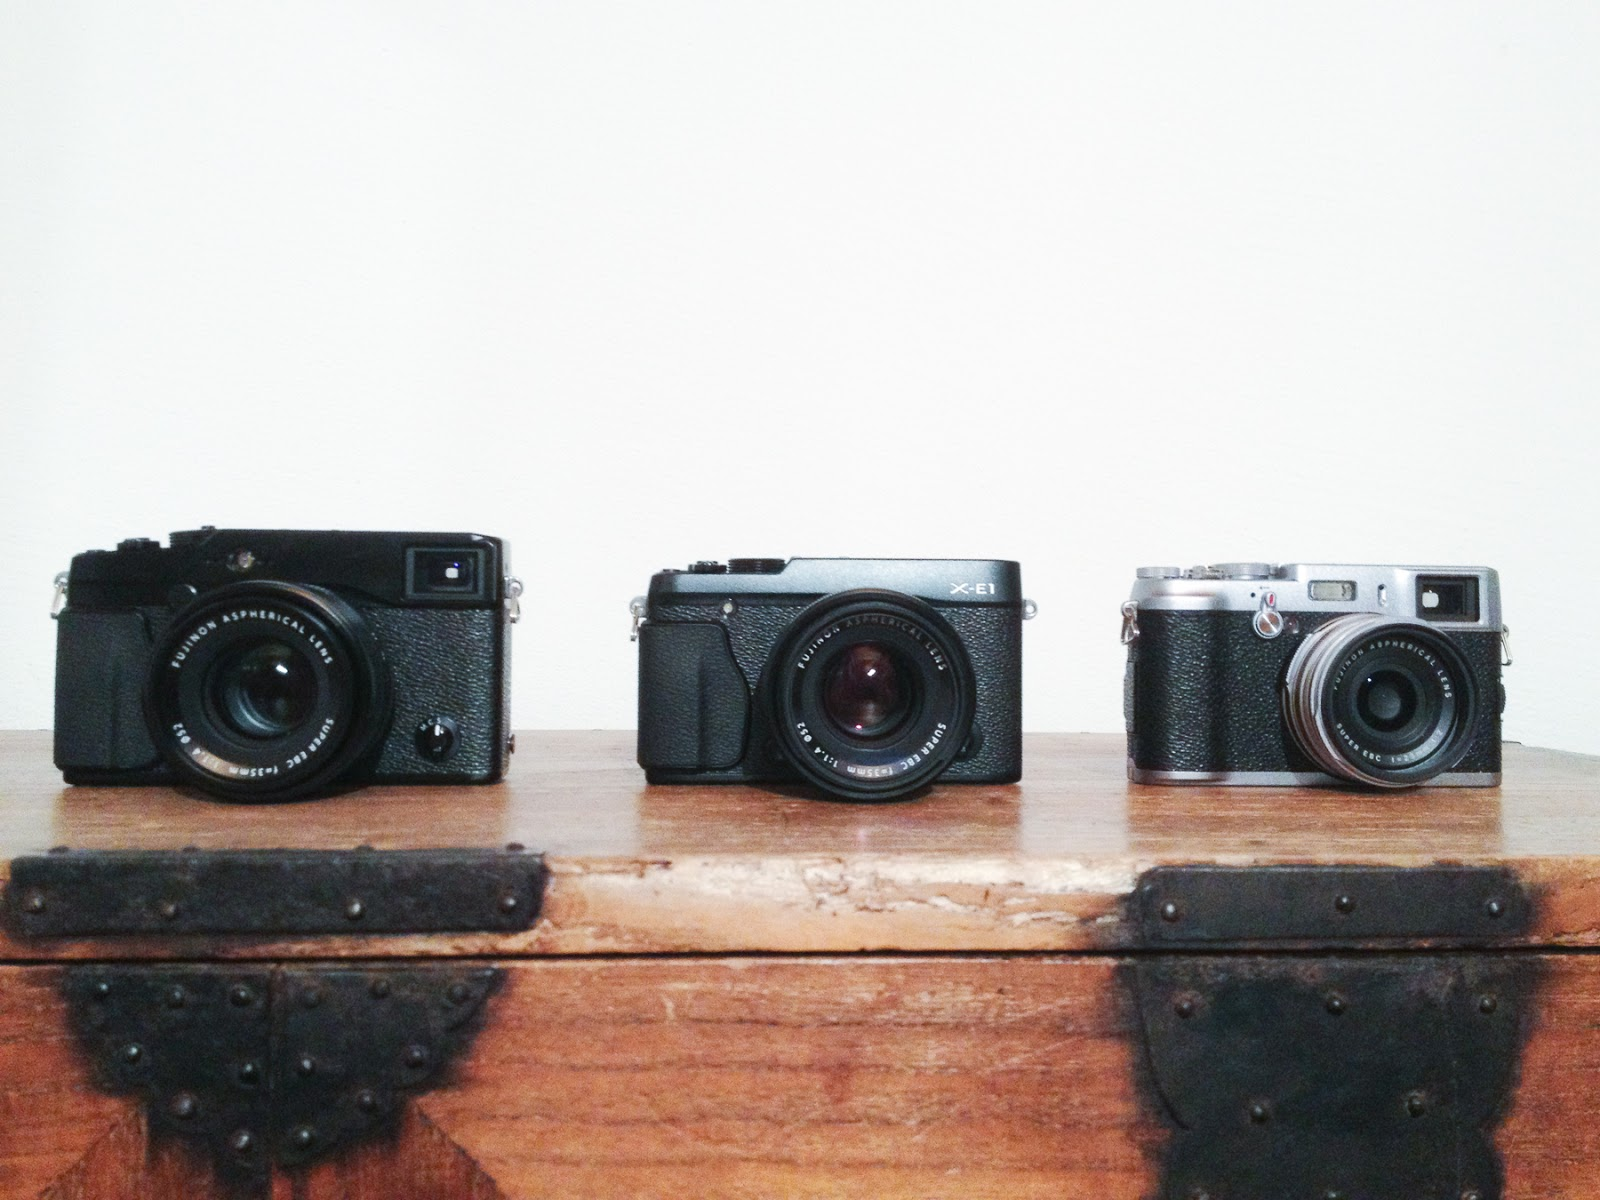 The Fujifilm X Trinity: Fujifilm X-Pro1 vs. X-E1 vs. X100 (Part 1)